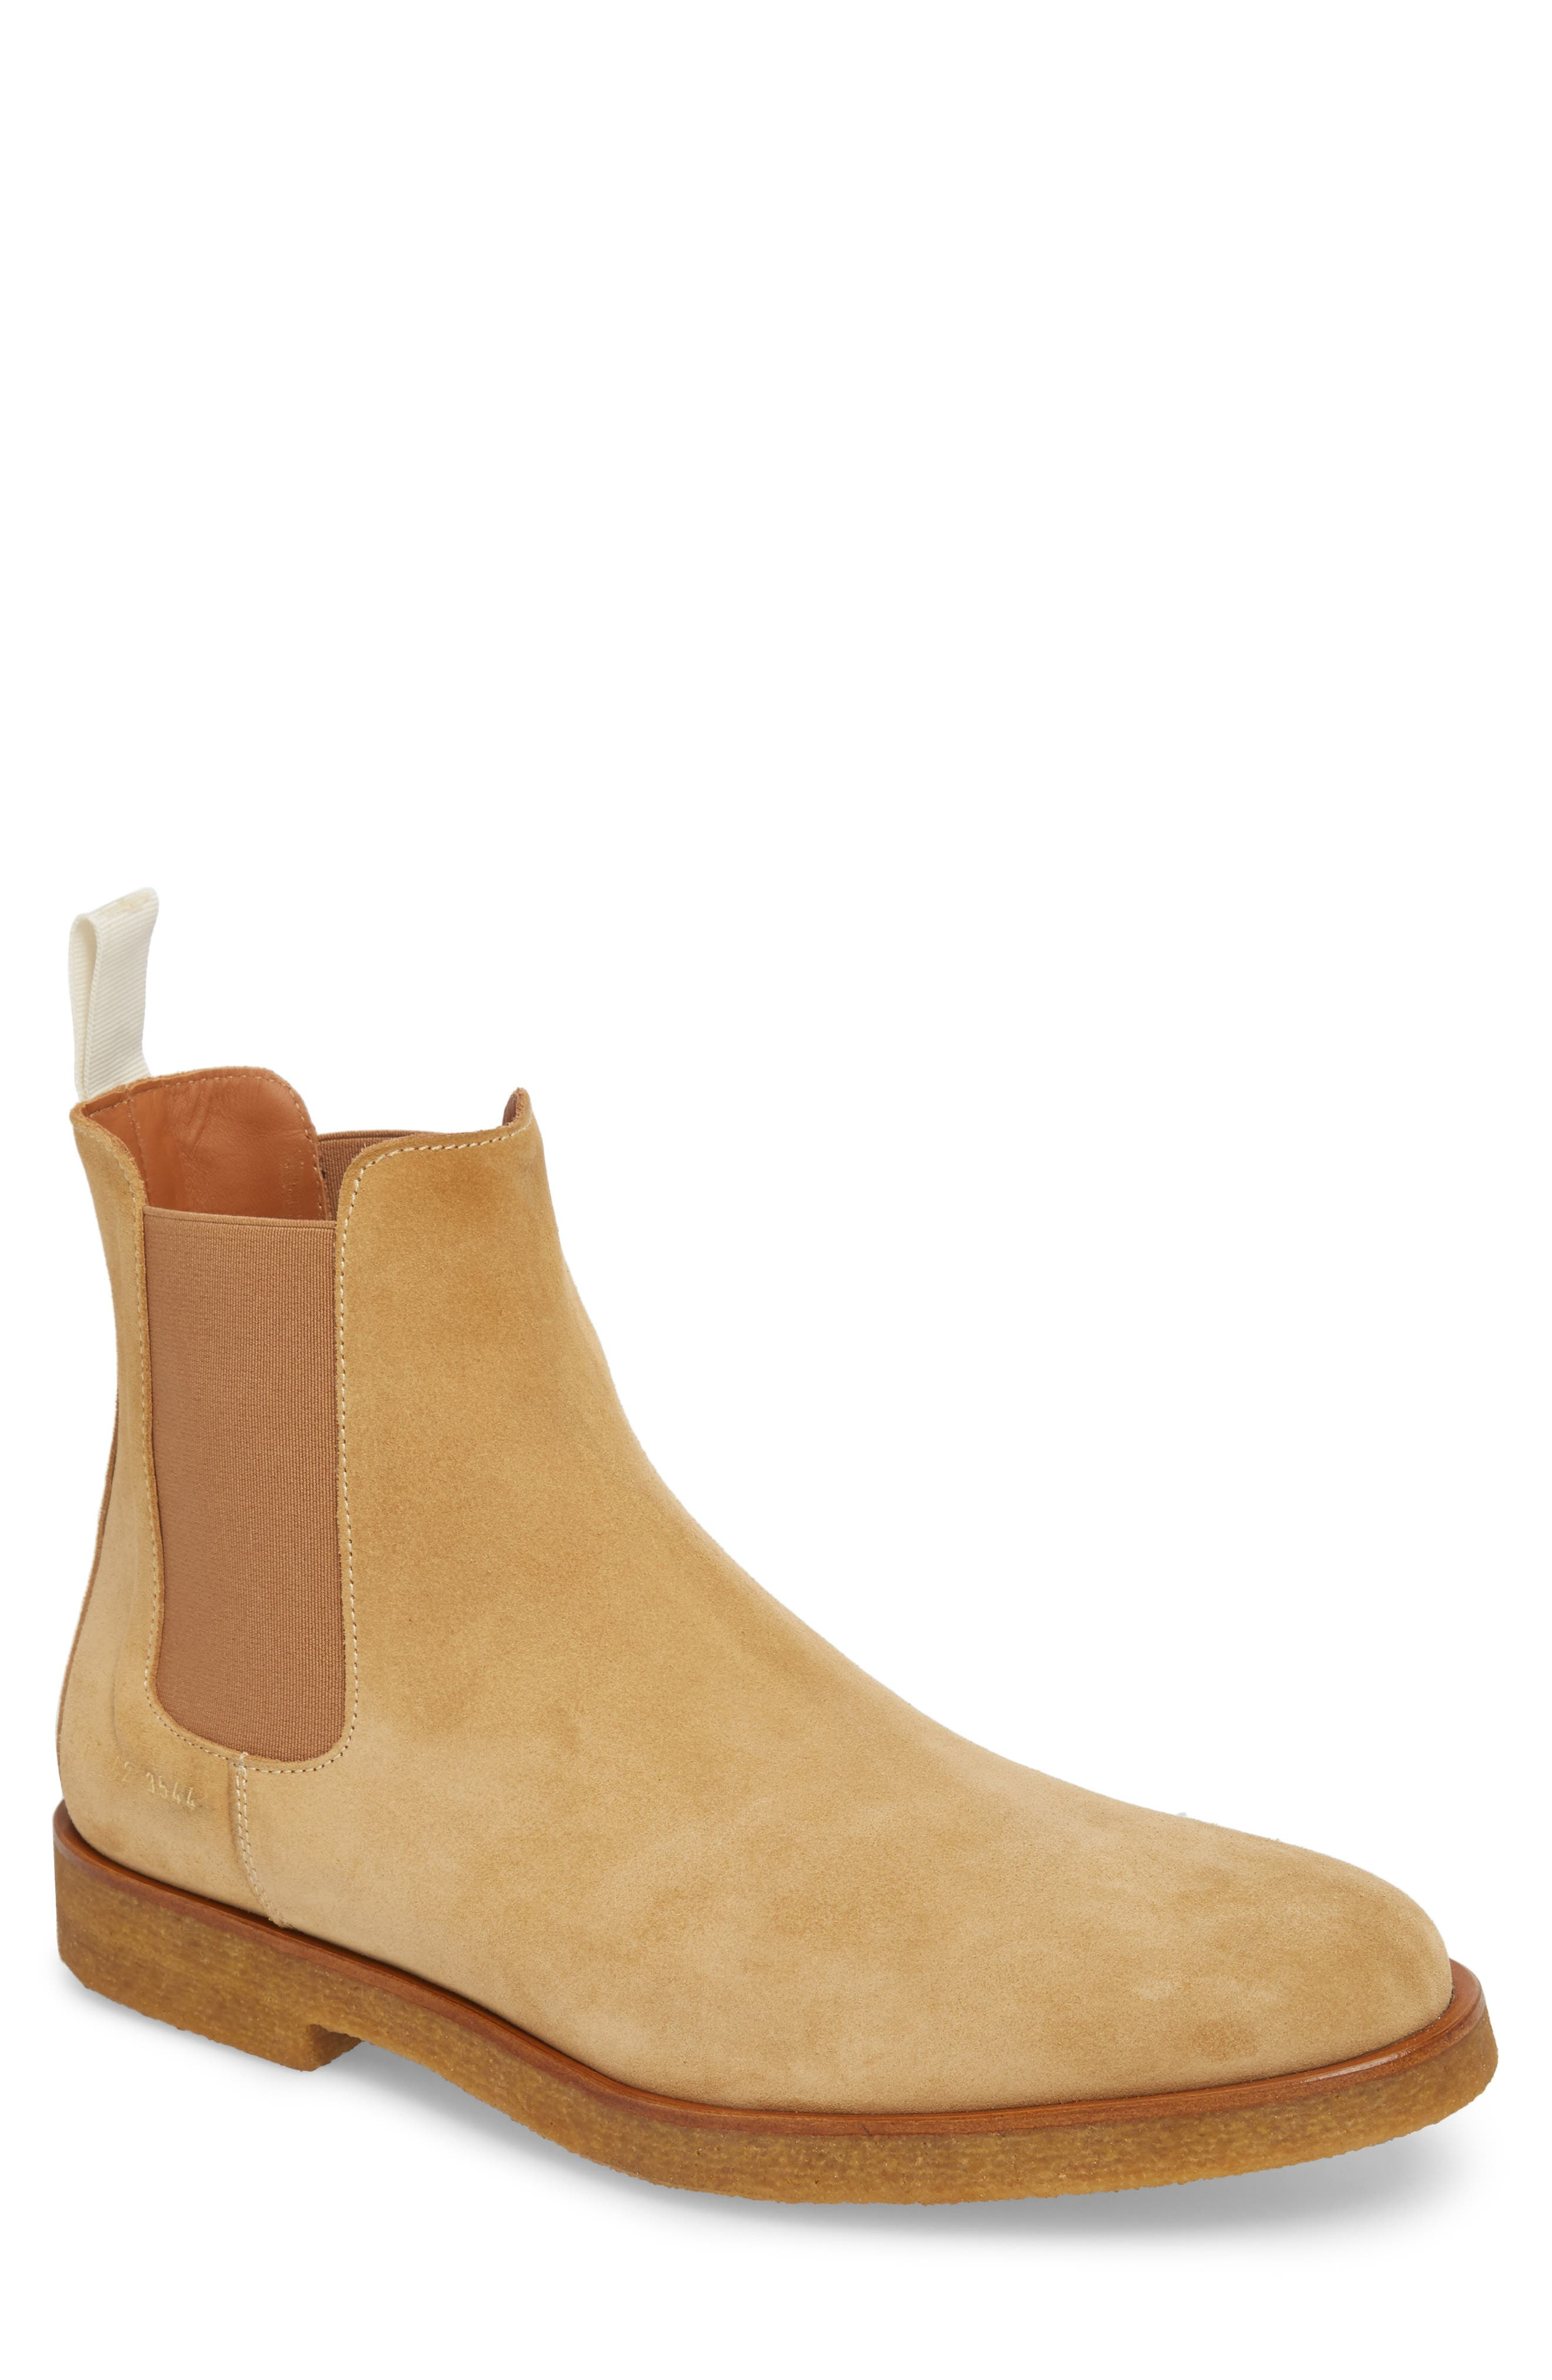 Chelsea Boot,                             Main thumbnail 1, color,                             AMBER SUEDE